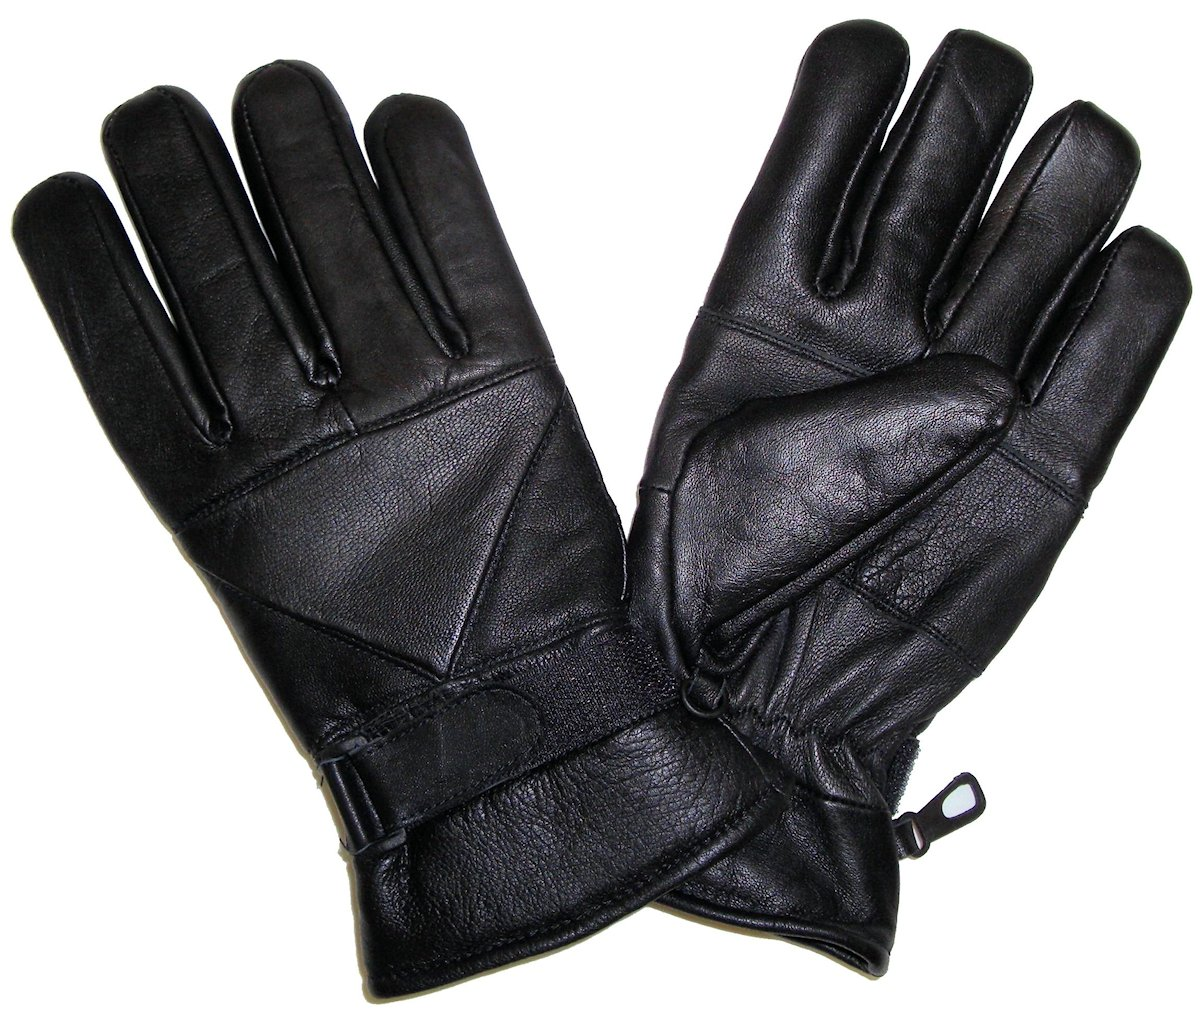 Driving gloves winter - About Mens Warm Insulated Thinsulate Winter Leather Driving Gloves 1200x1022